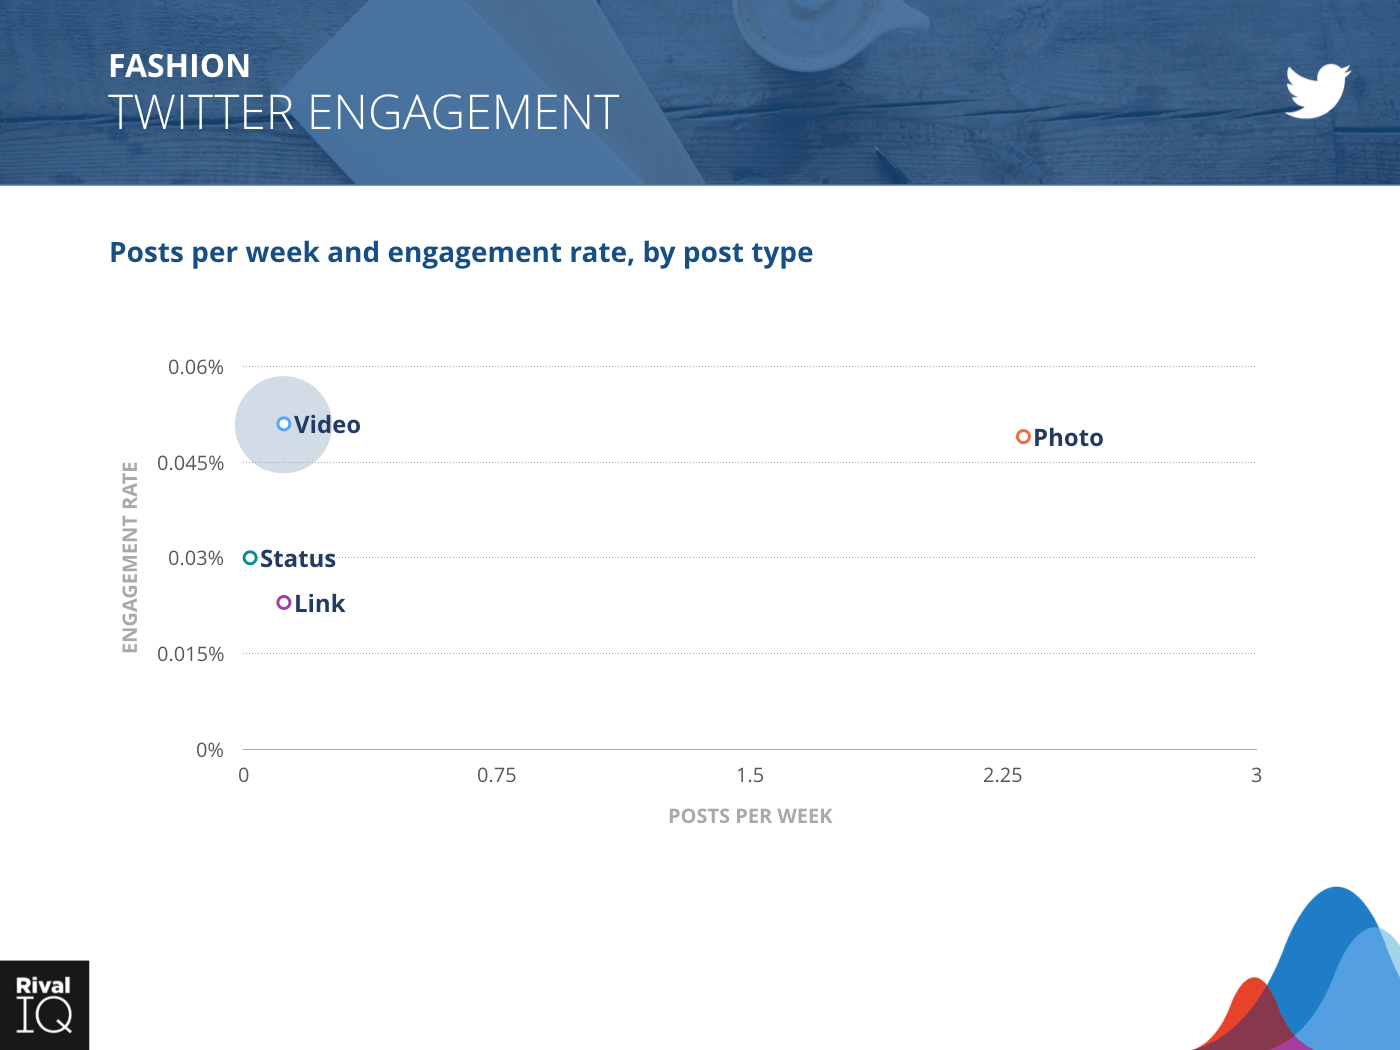 Fashion Industry: scatter graph, posts per week and engagement rate on Twitter by post type